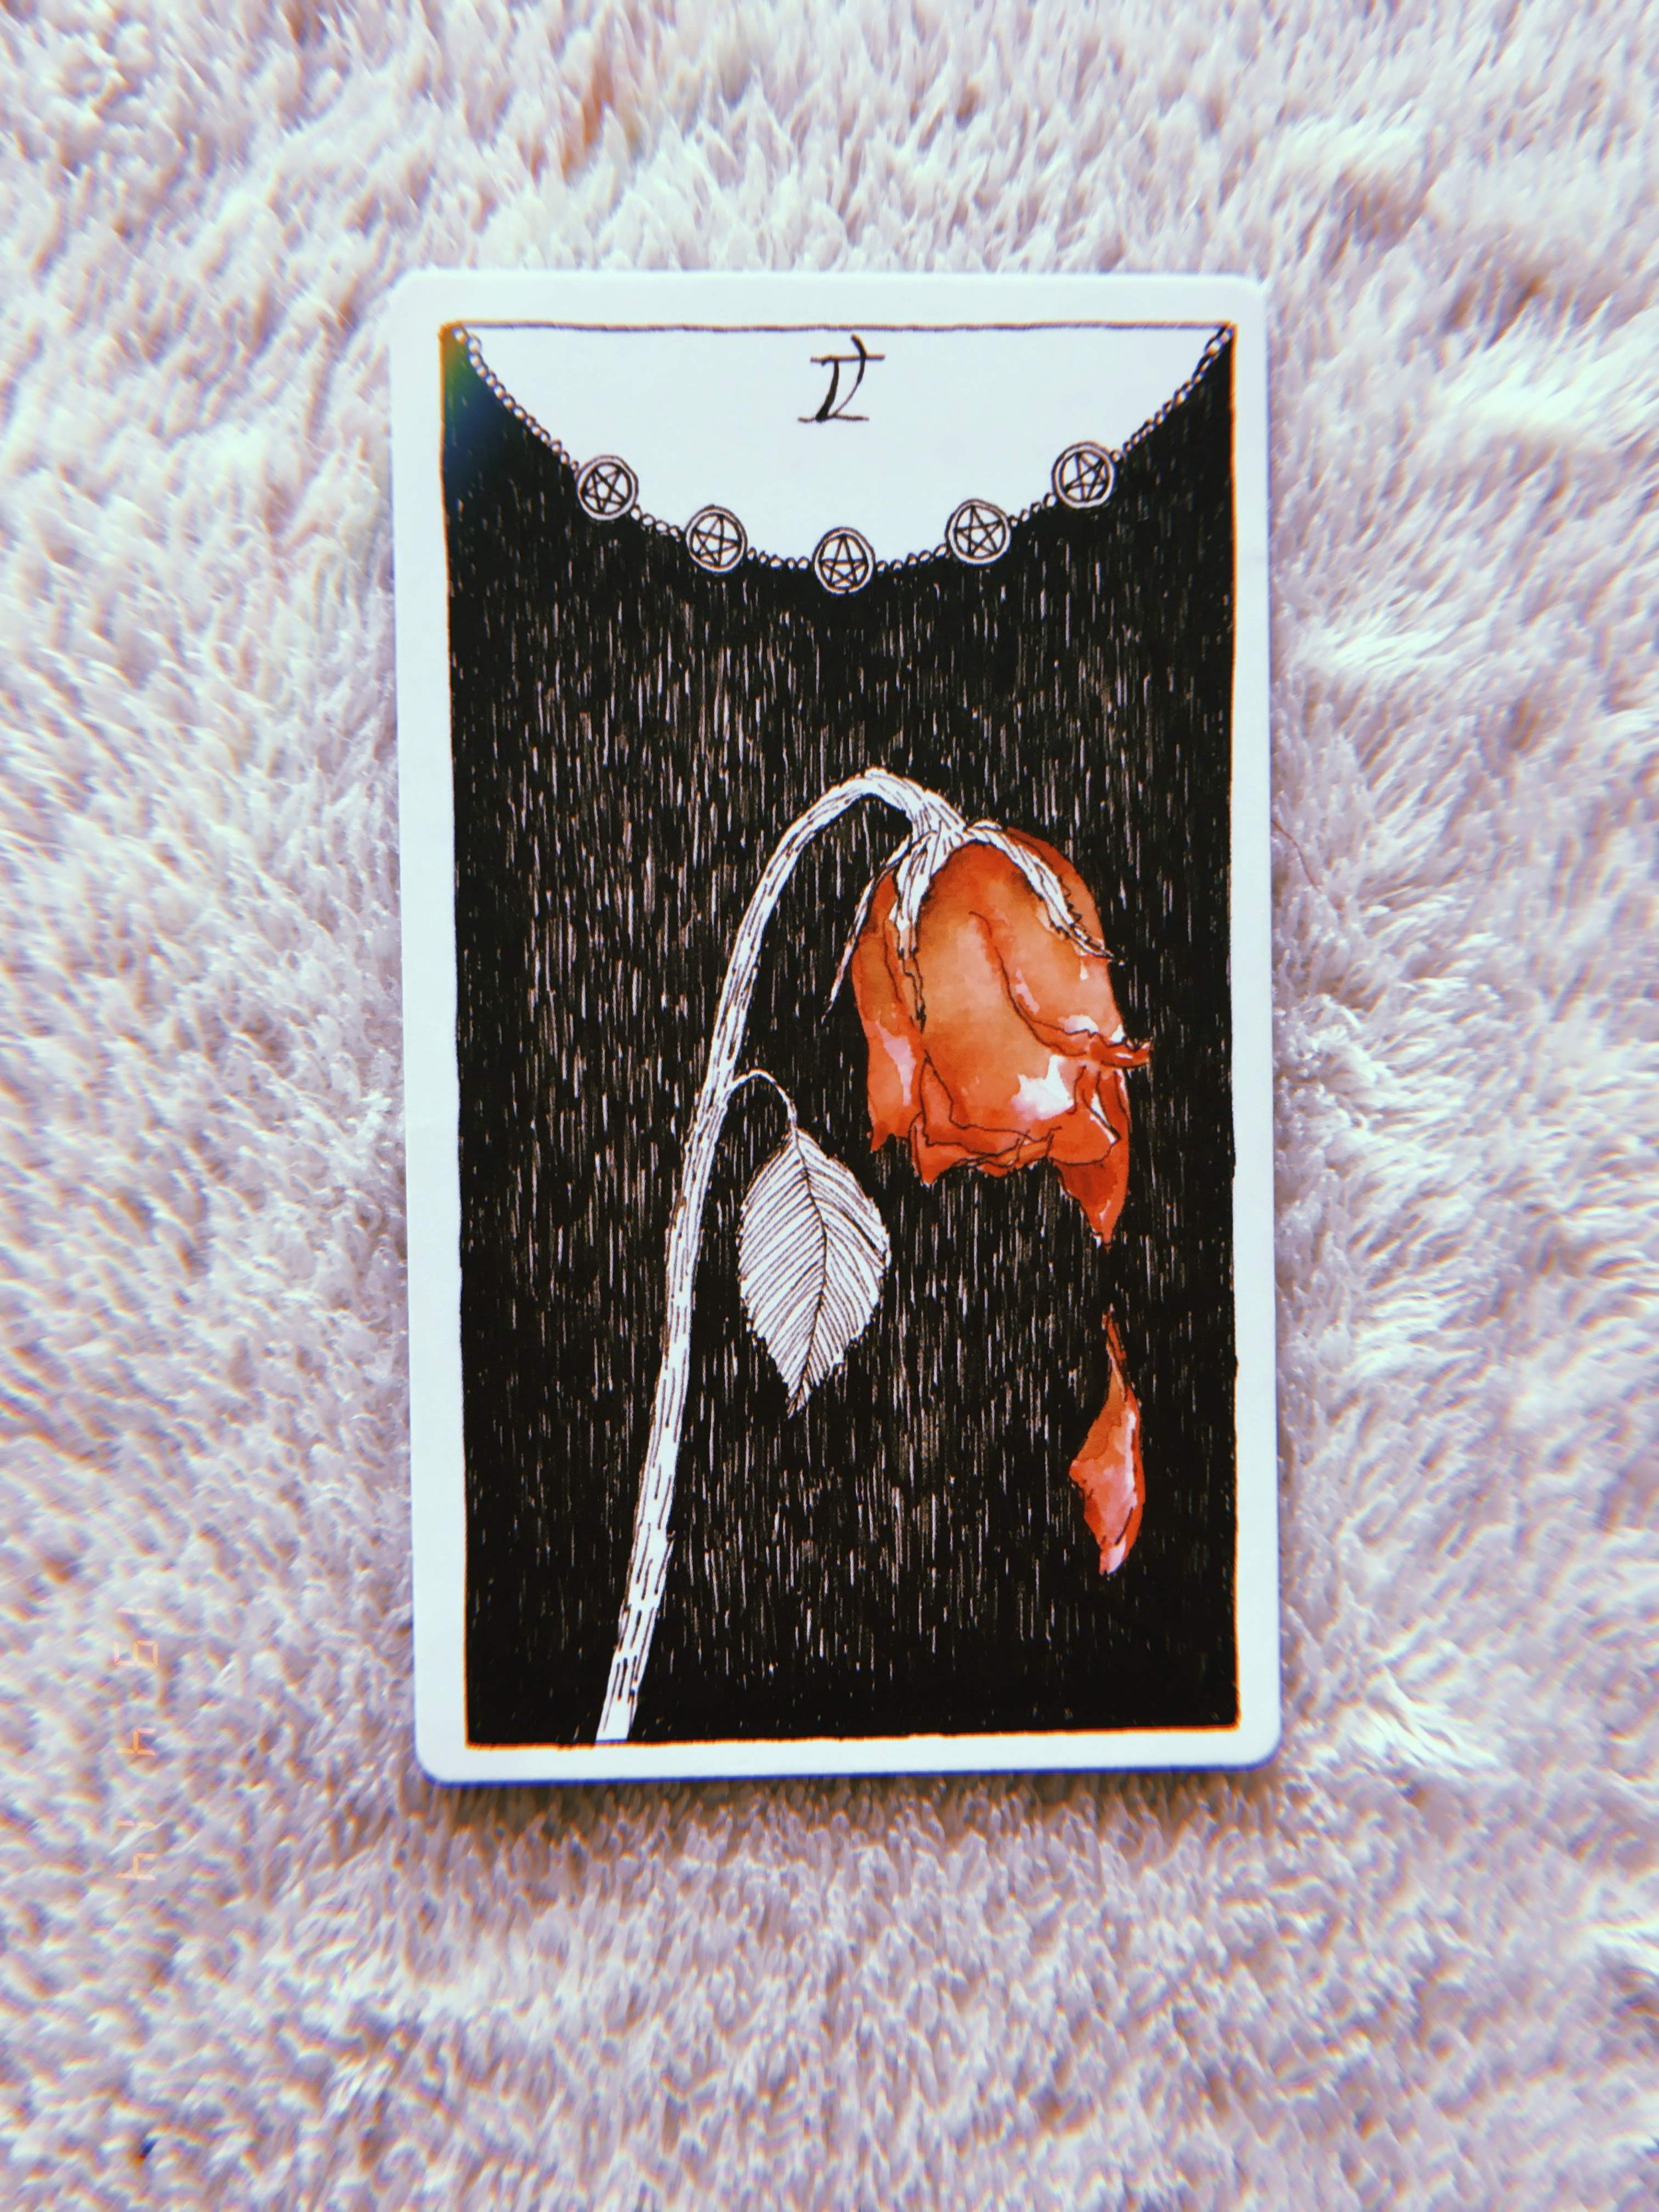 five of pentacles.jpg